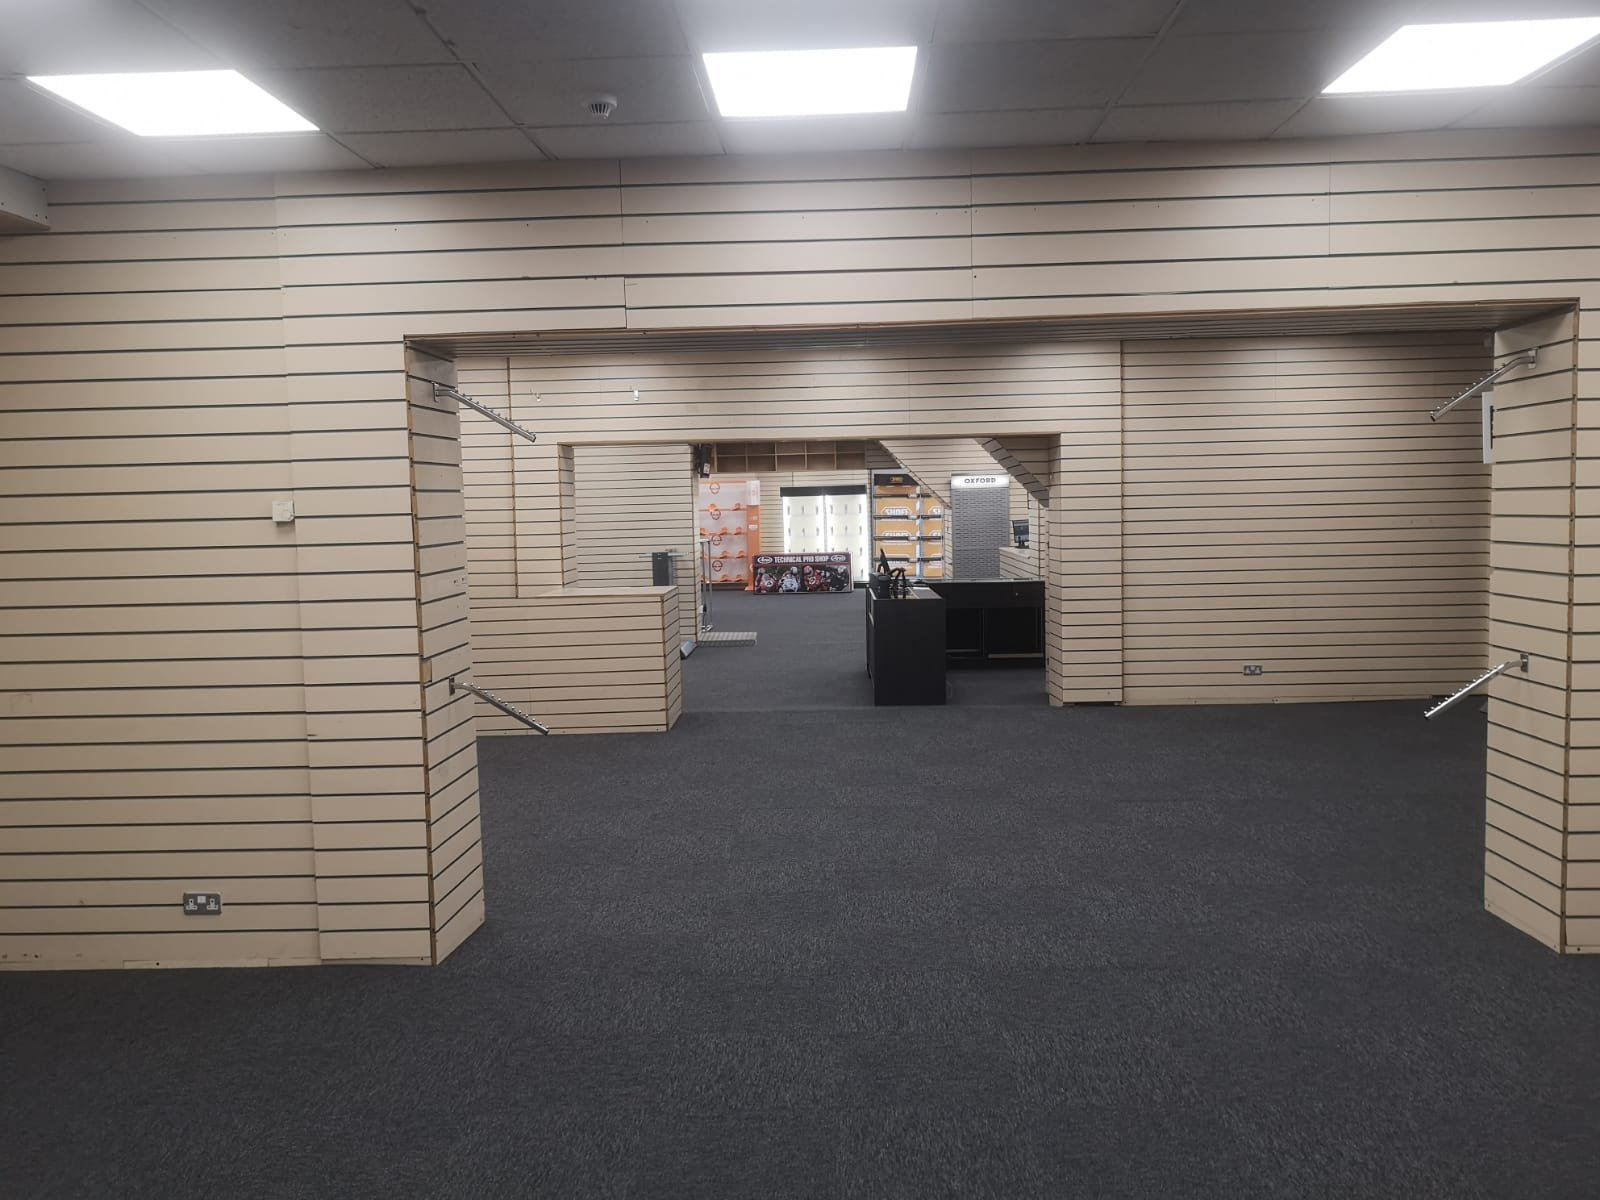 Looking down the store